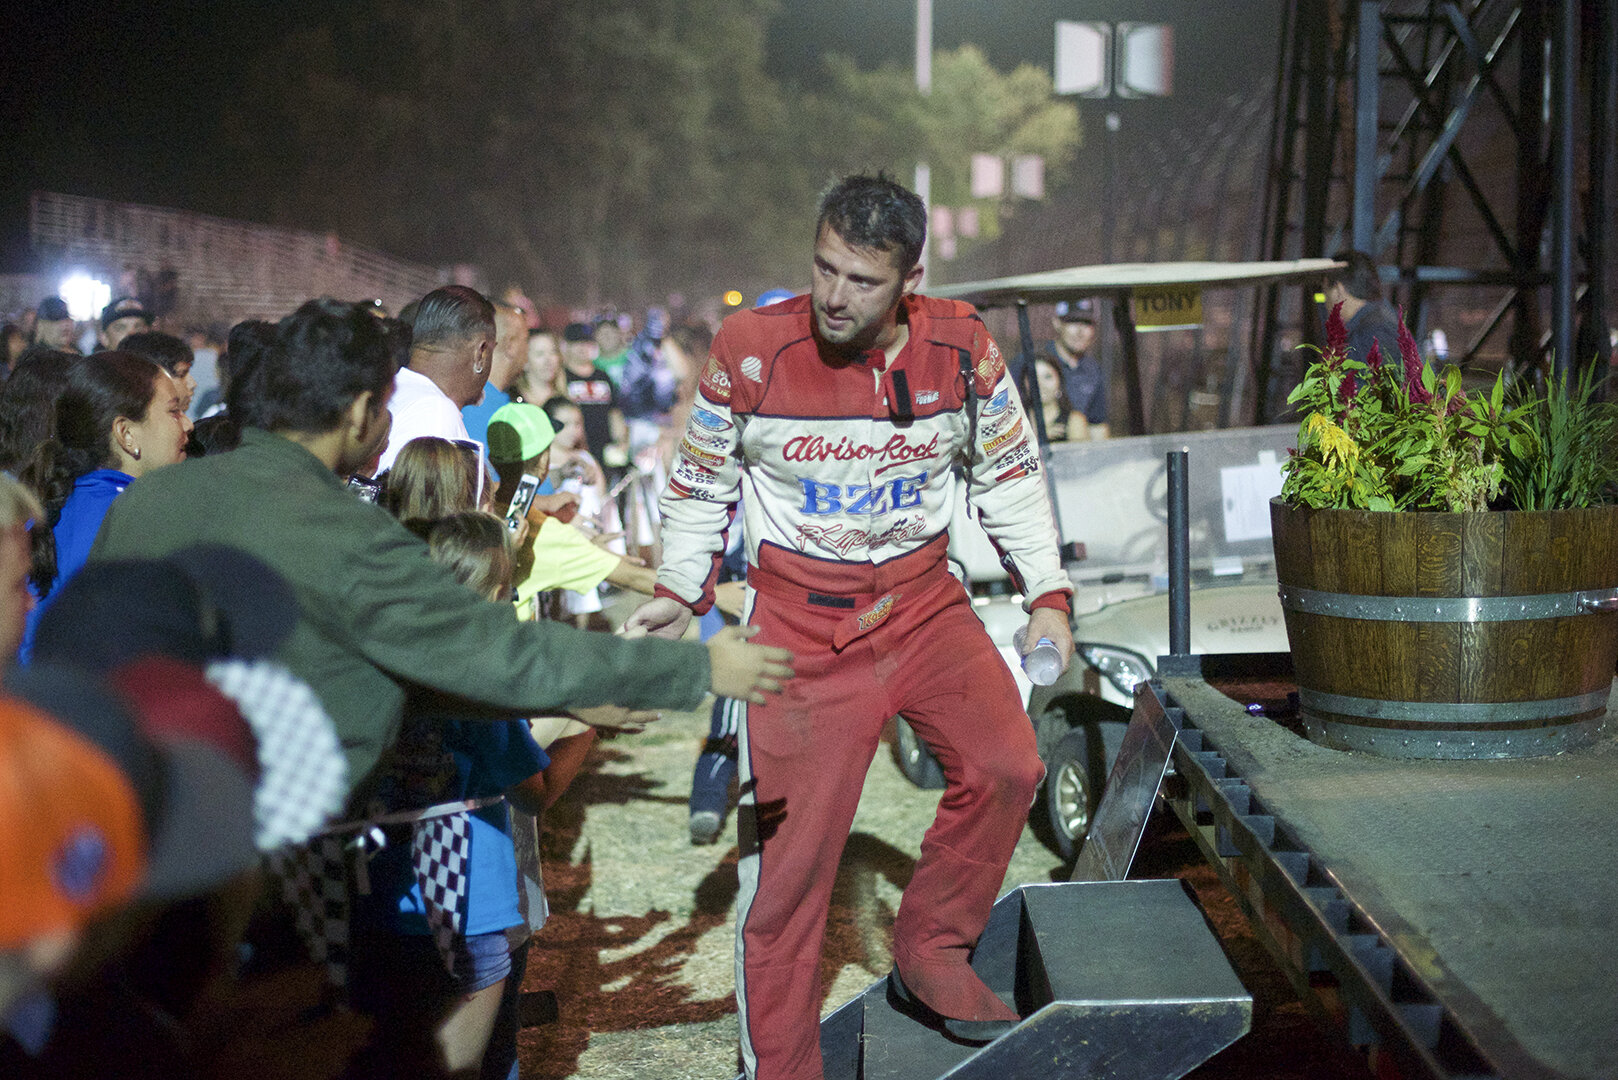 Bud Kaeding thanks the fans as he mounts the podium to celebrate a well earned second place finish in the wing car race.